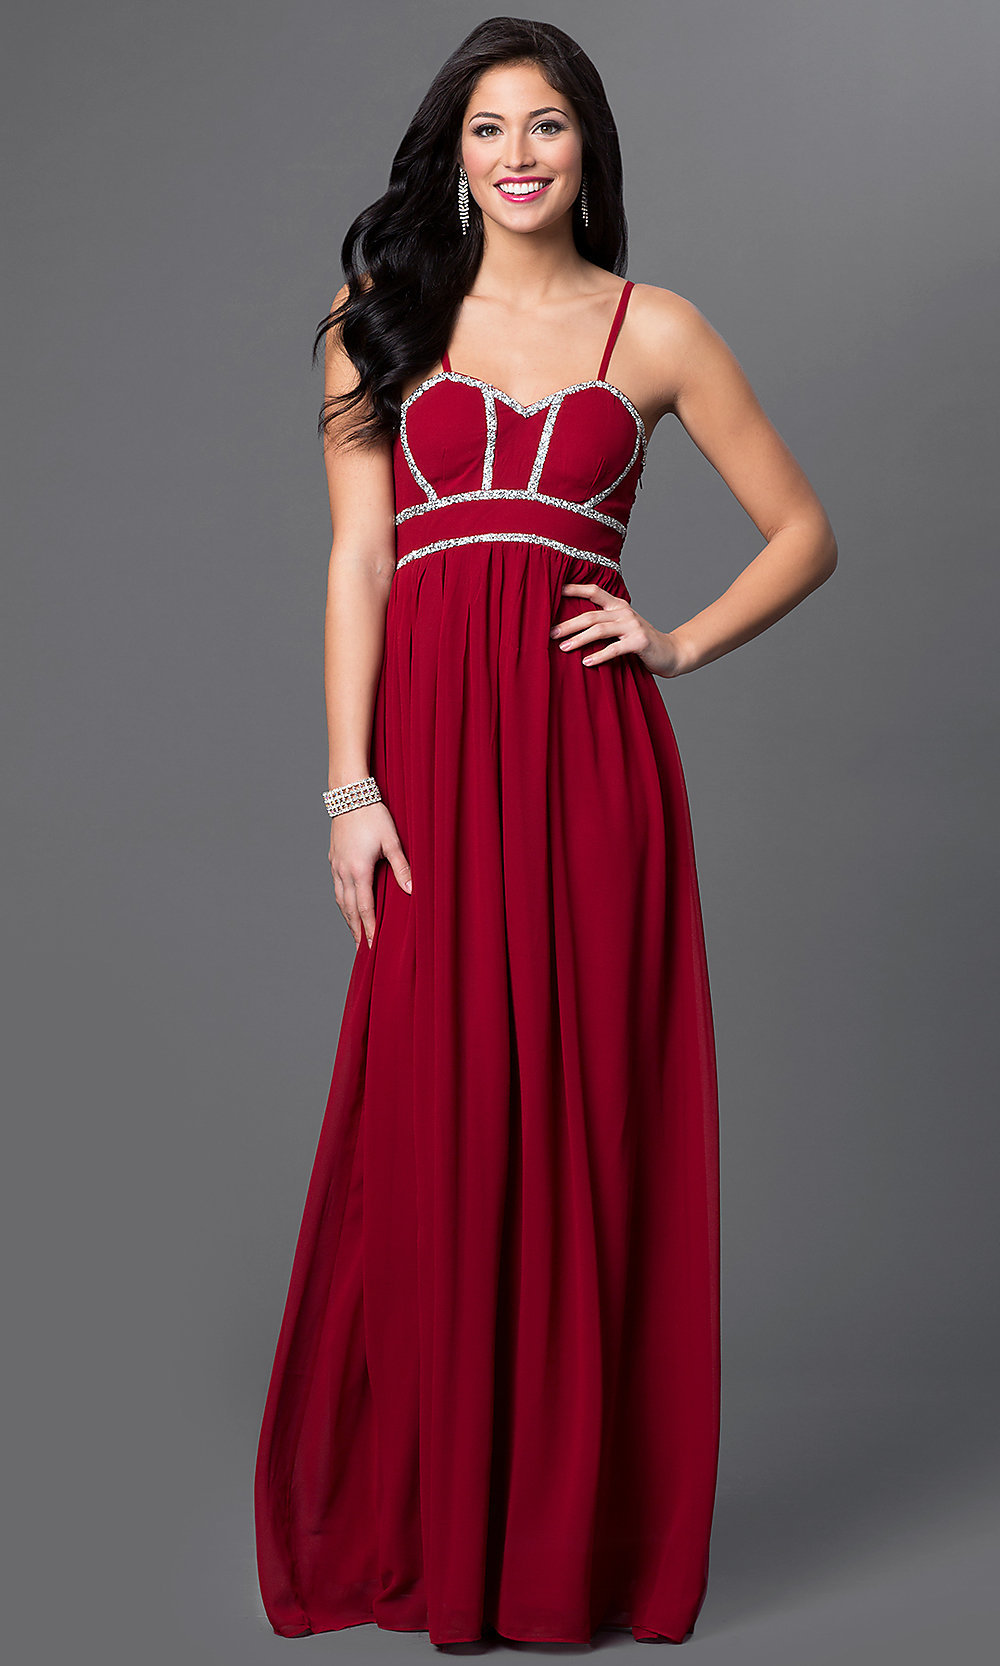 Classic Prom Dresses, Designer Prom Gowns - p1 (by 32 - low price)